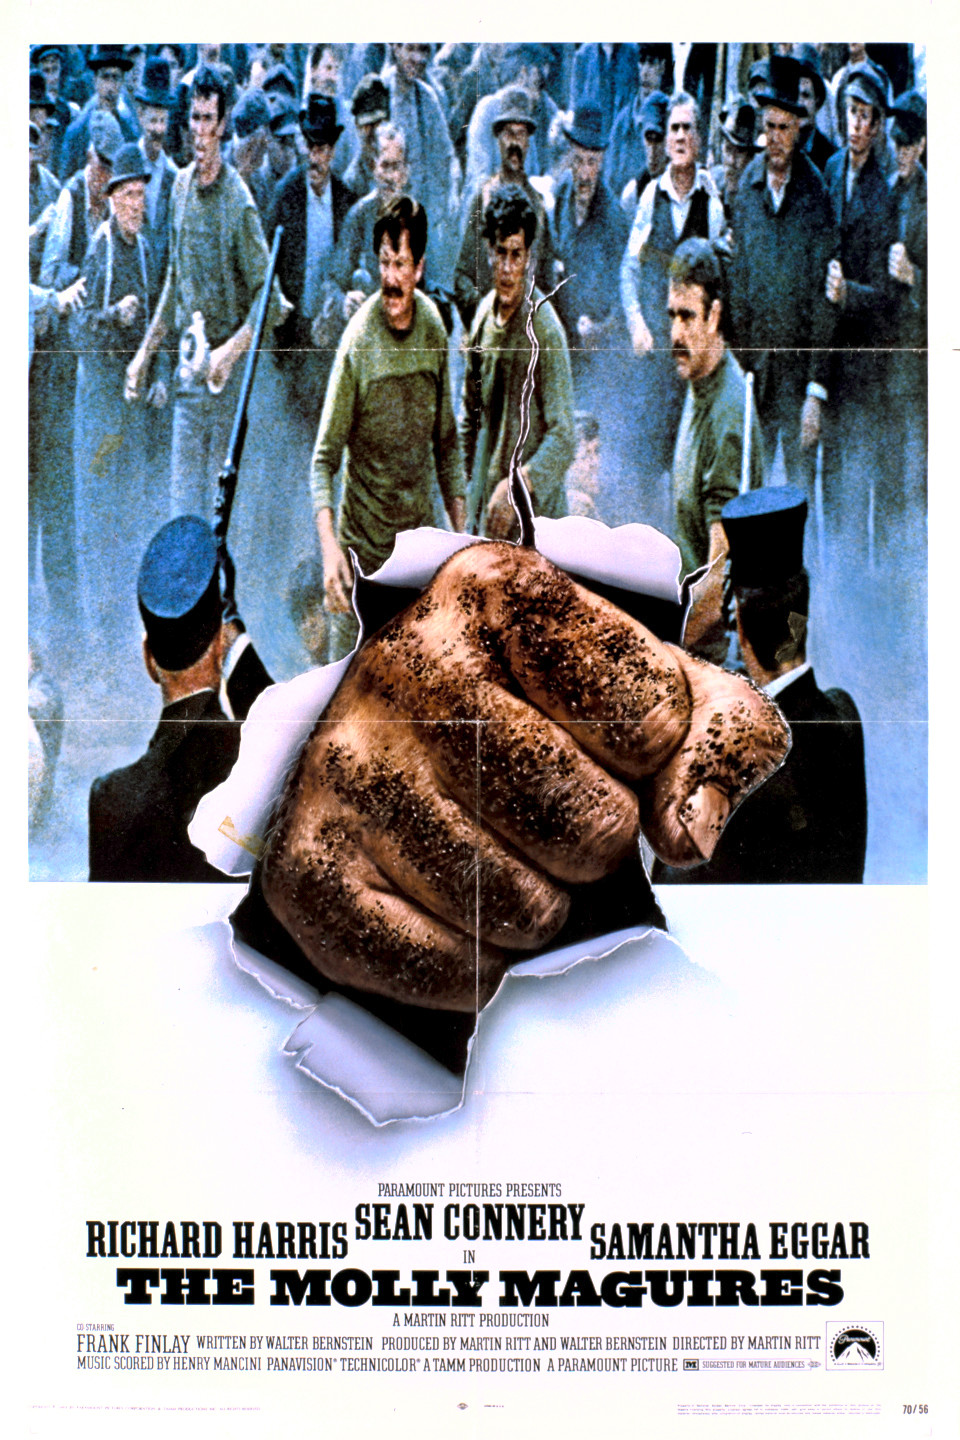 The Molly Maguires (film) wwwgstaticcomtvthumbmovieposters2688p2688p